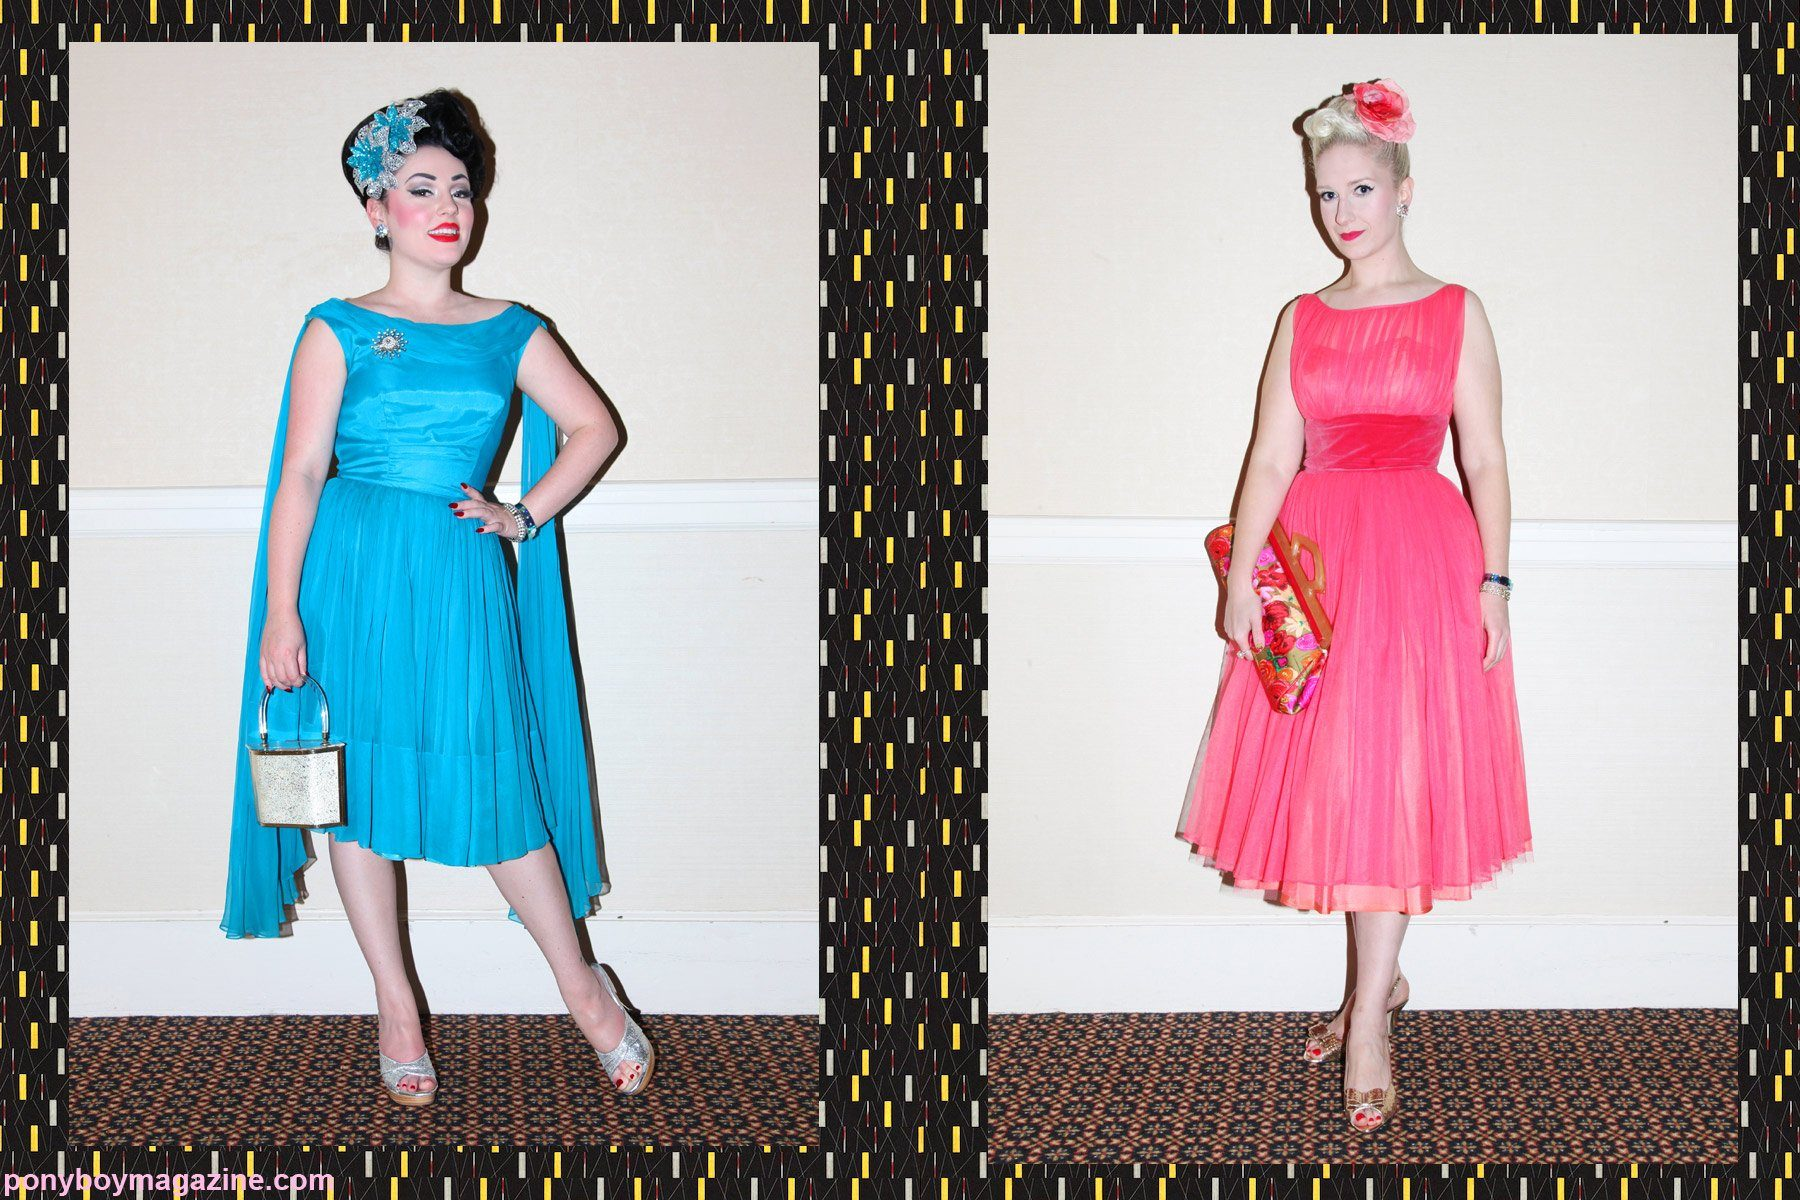 Lovely women's rockabilly vintage fashions at The New England Shake-up, photographed by Alexander Thompson.